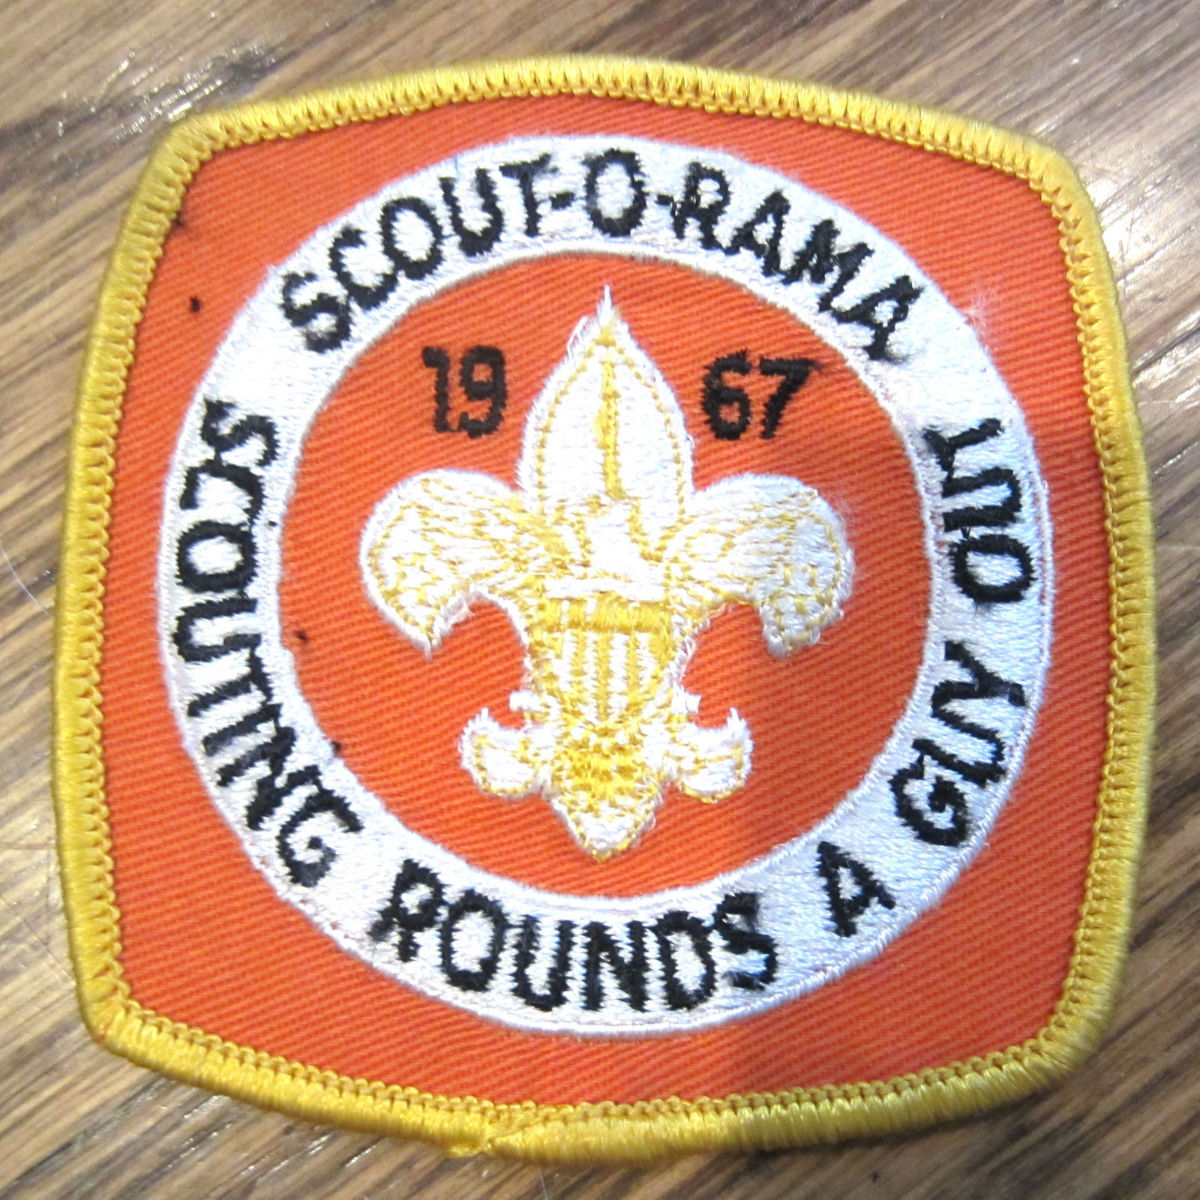 Vintage Boy Scout Association Magazine - The Scout - 4th April 1958 - Scouting